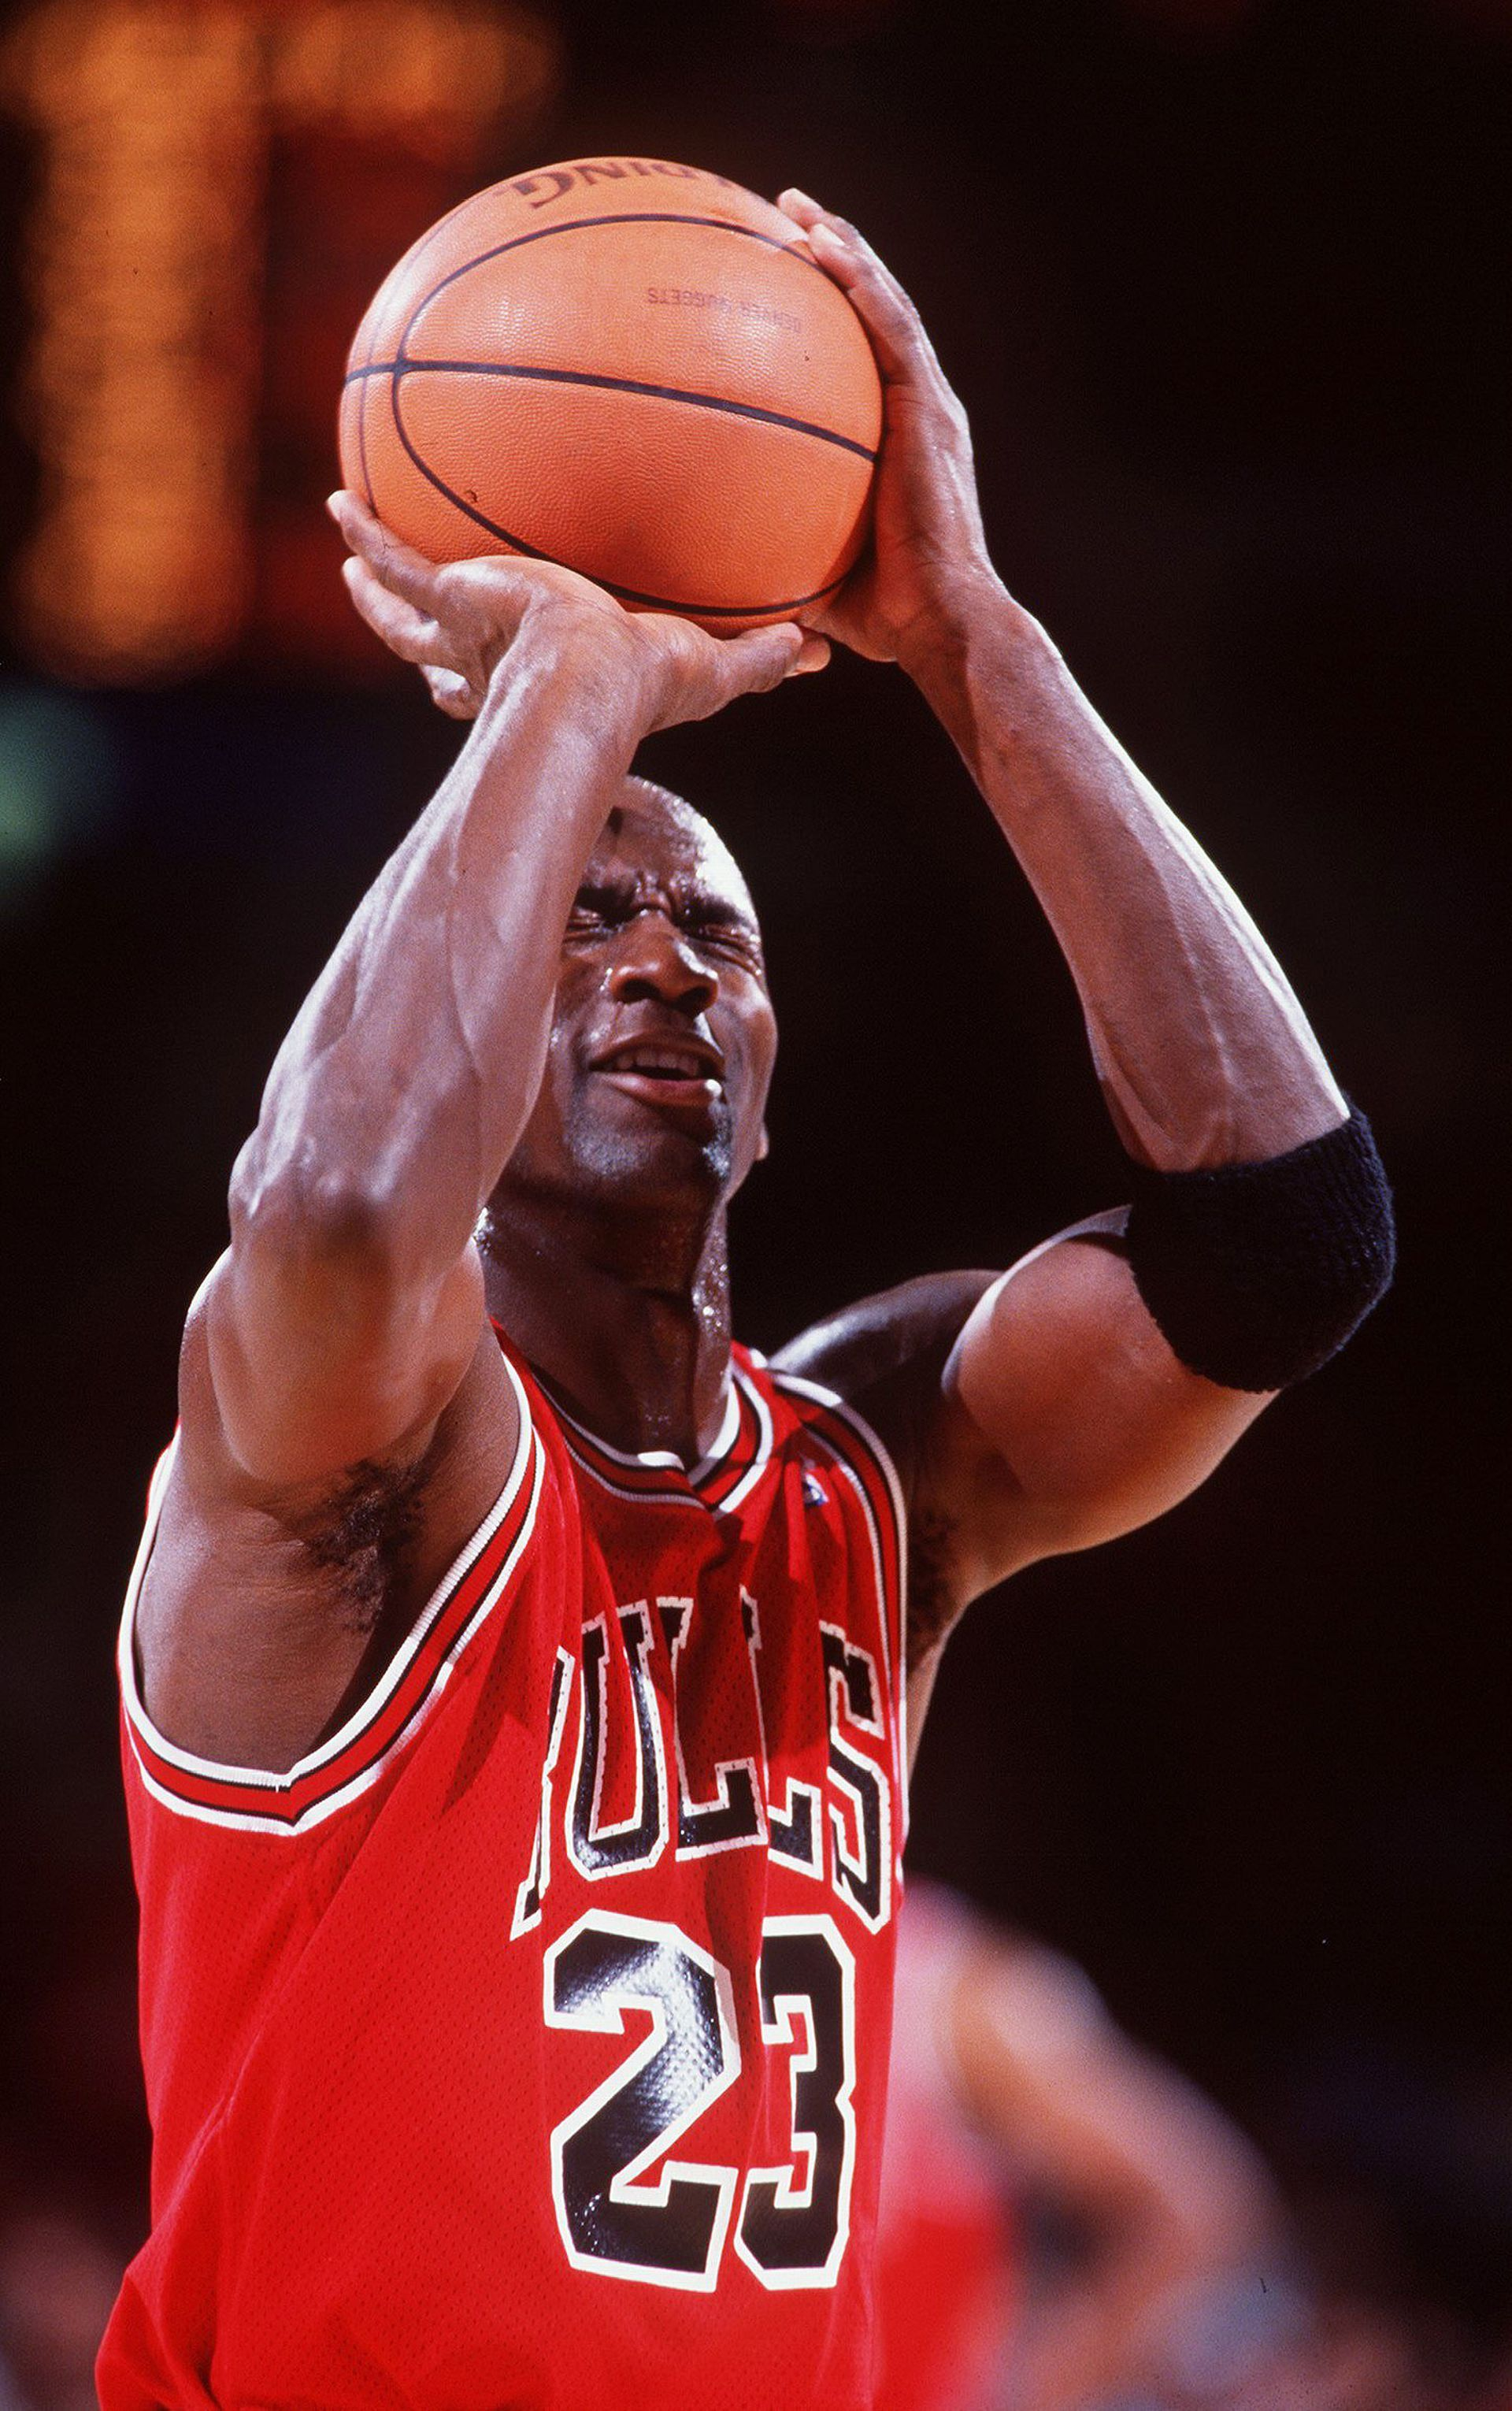 I need to write a descriptive essay and I chose to write it on Michael Jordan....?